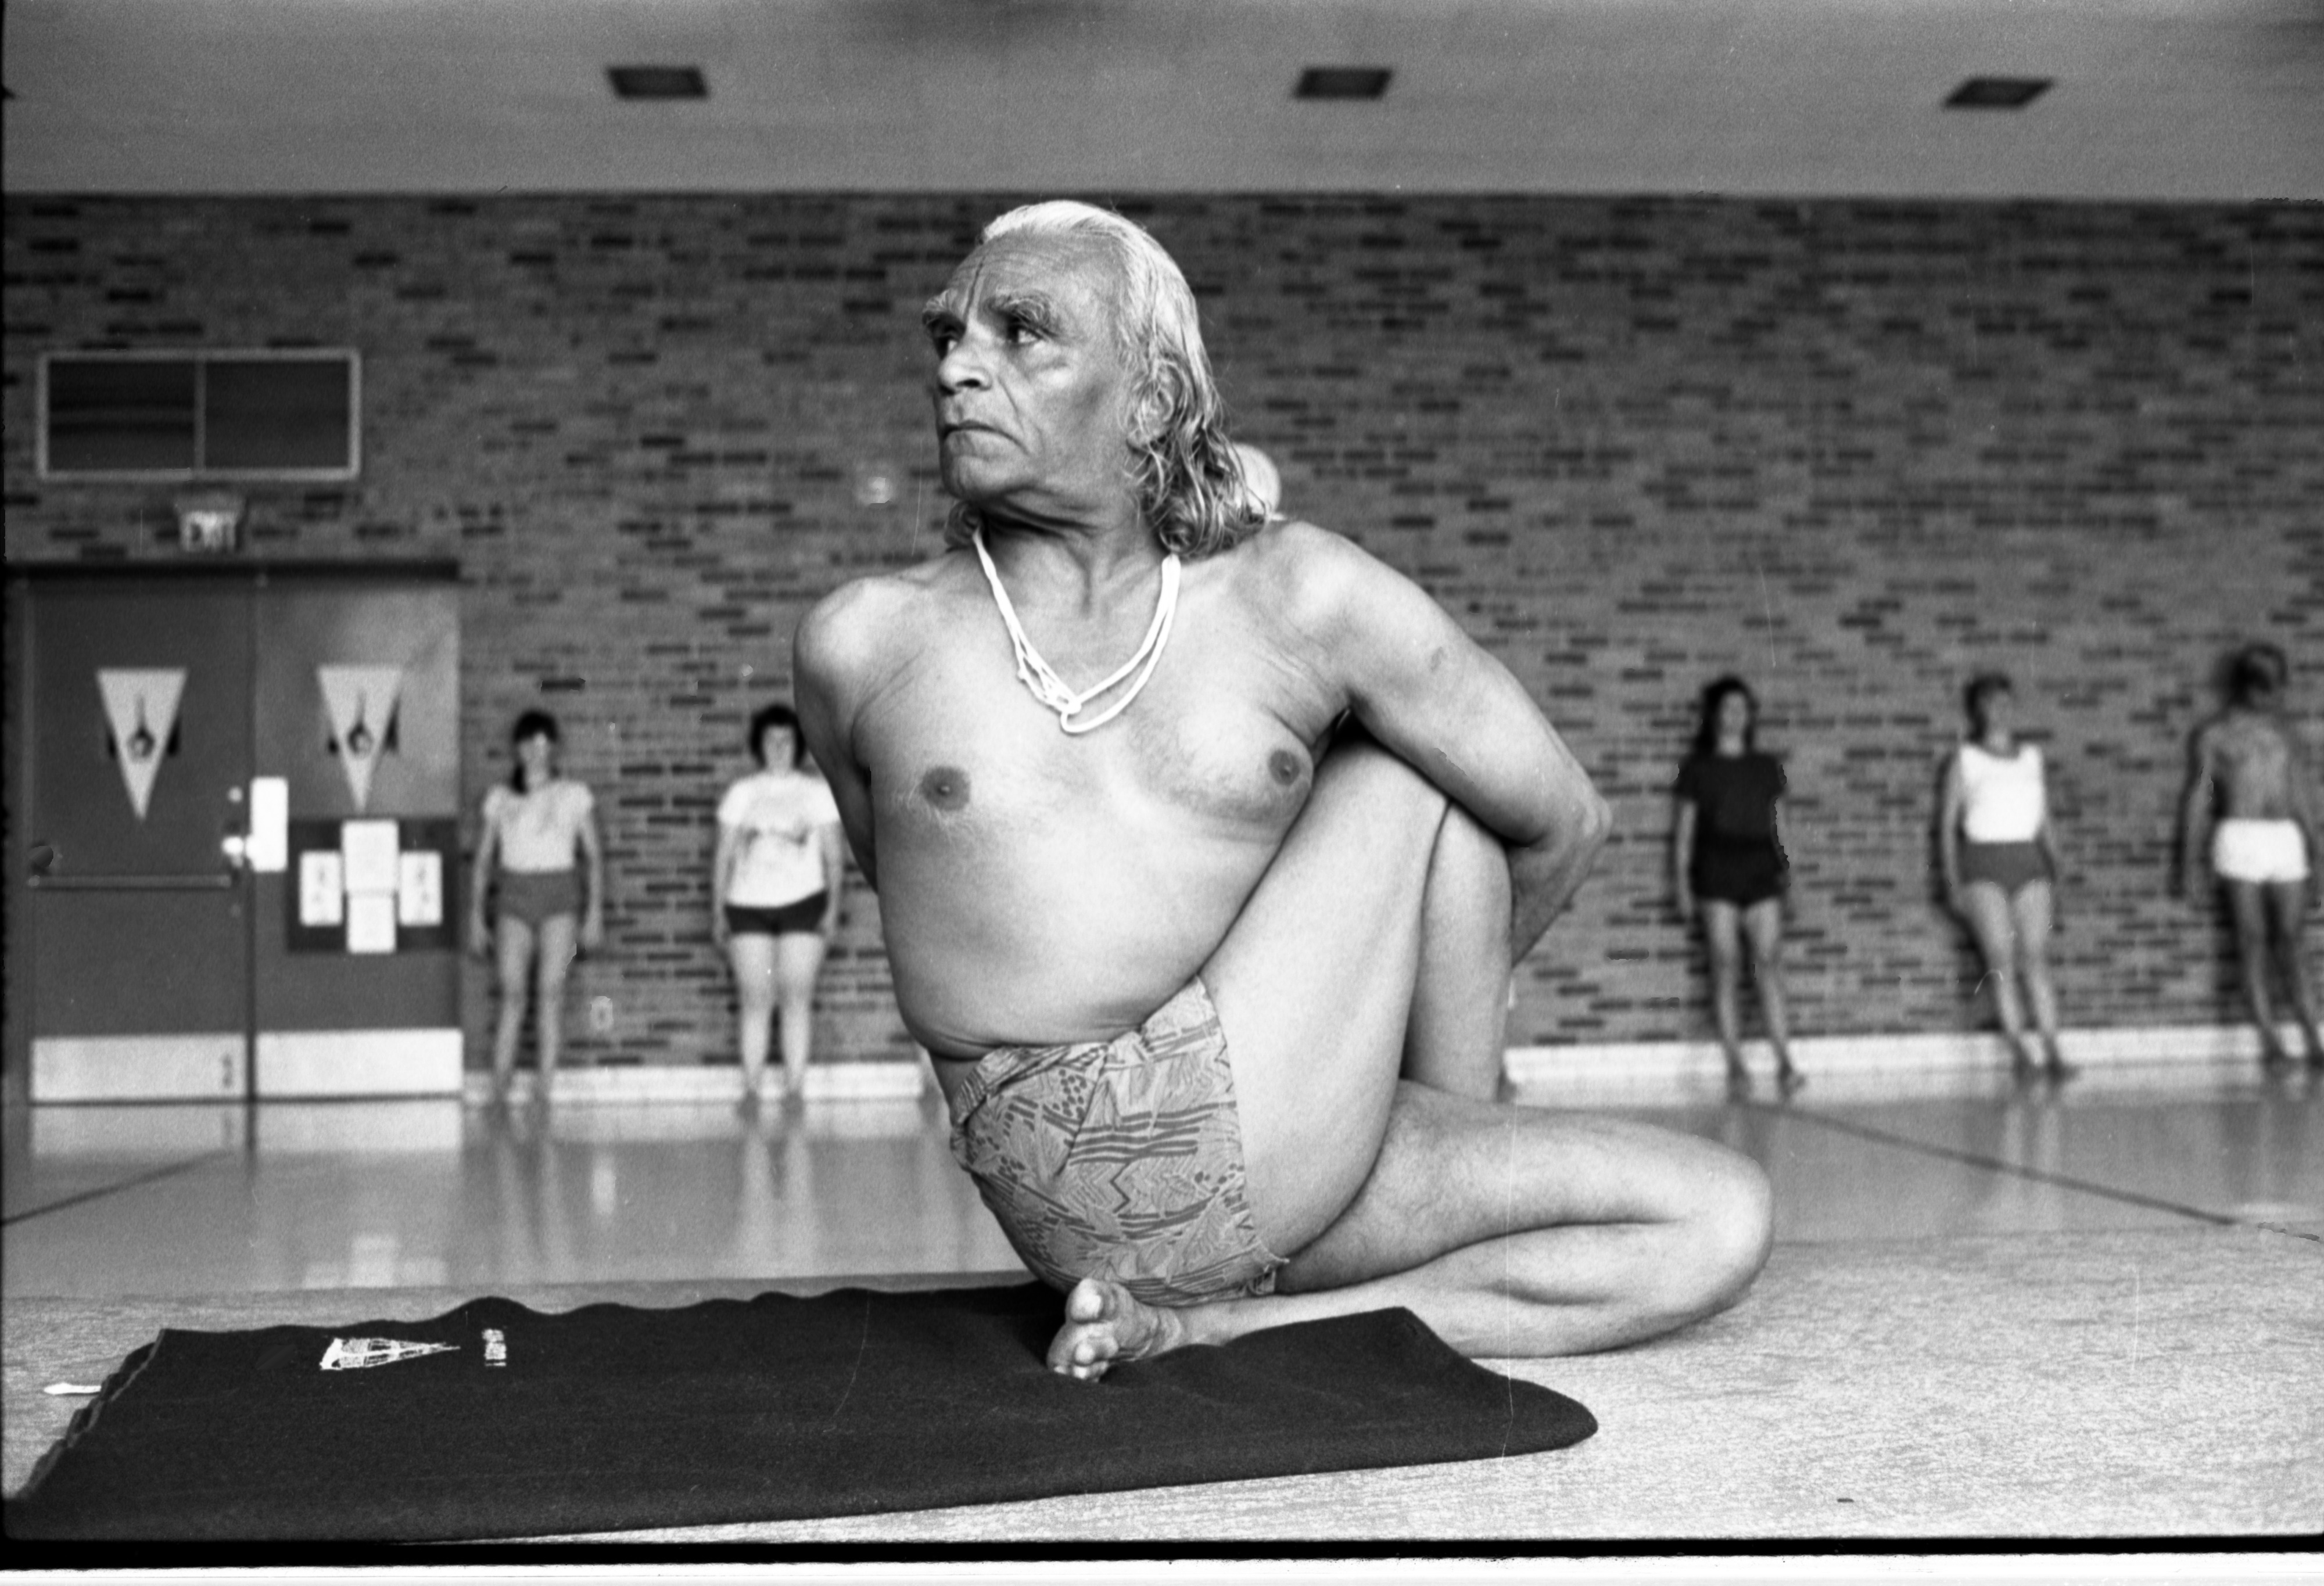 B K S Iyengar Demonstrates Yoga Pose For Students At The Ann Arbor Ymca September 24 1984 Ann Arbor District Library